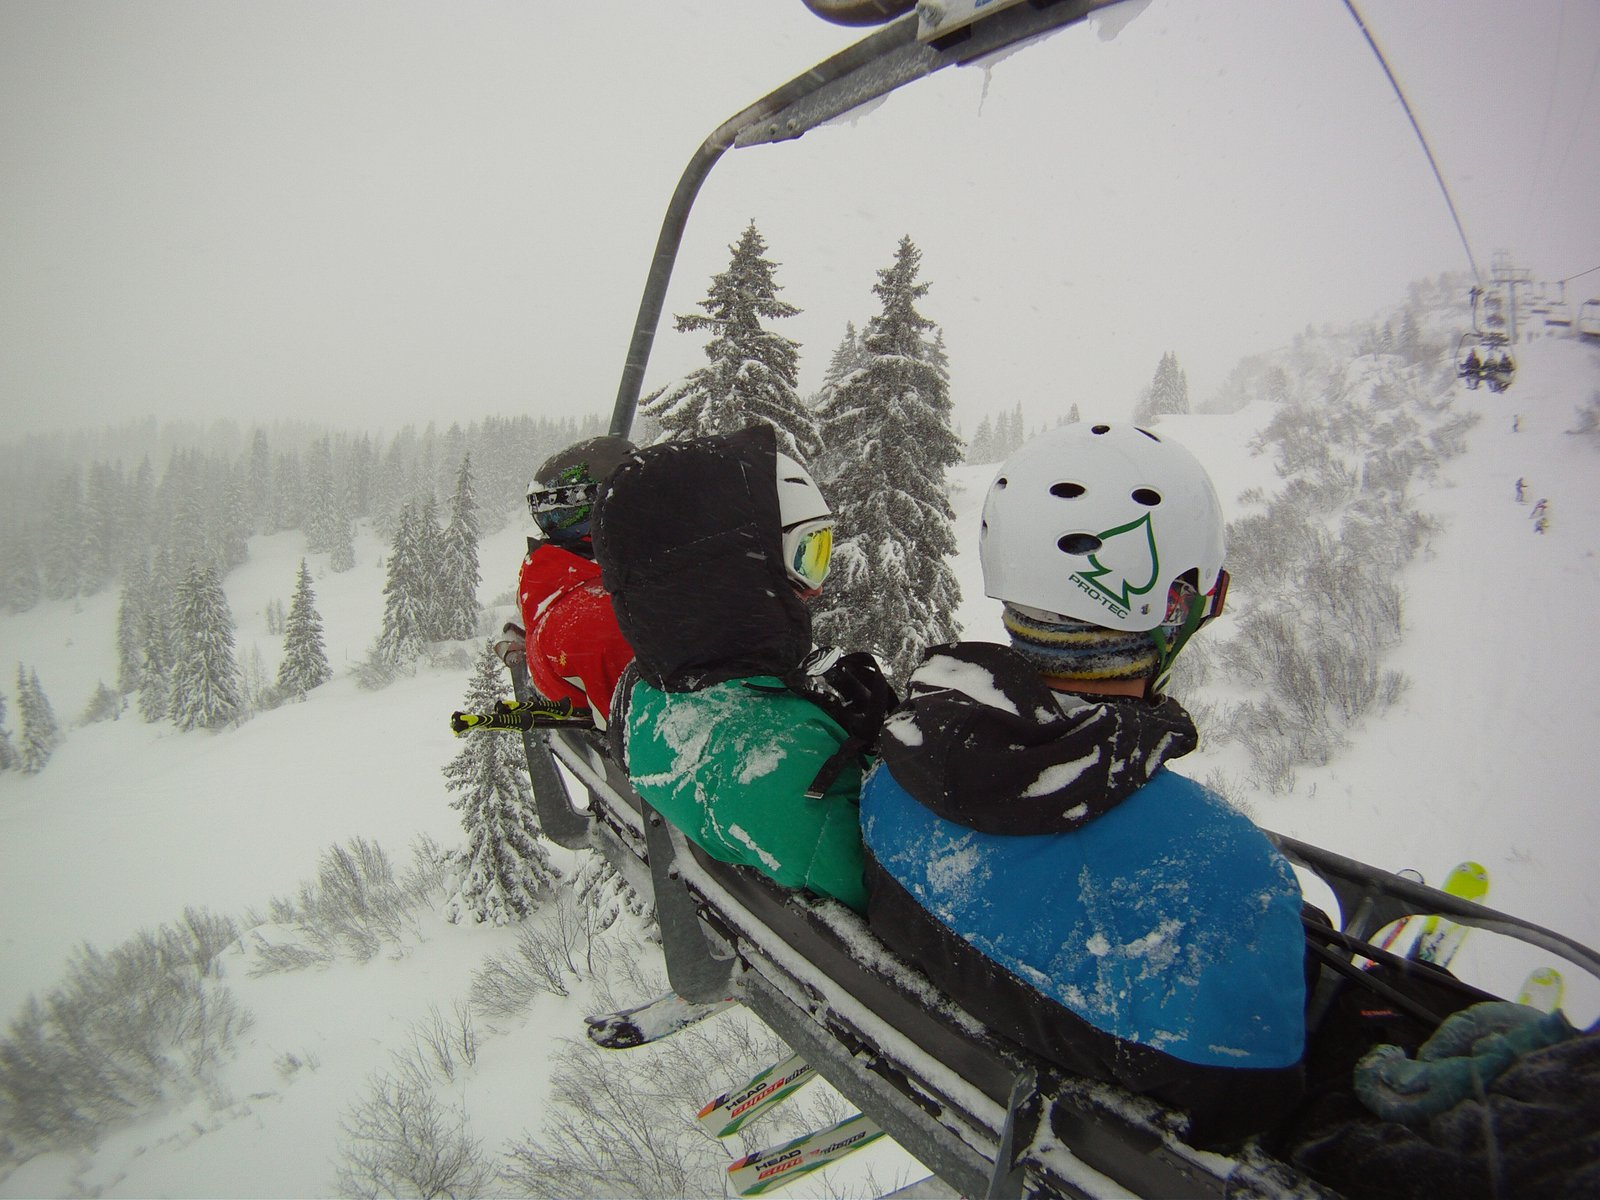 Shred in POW